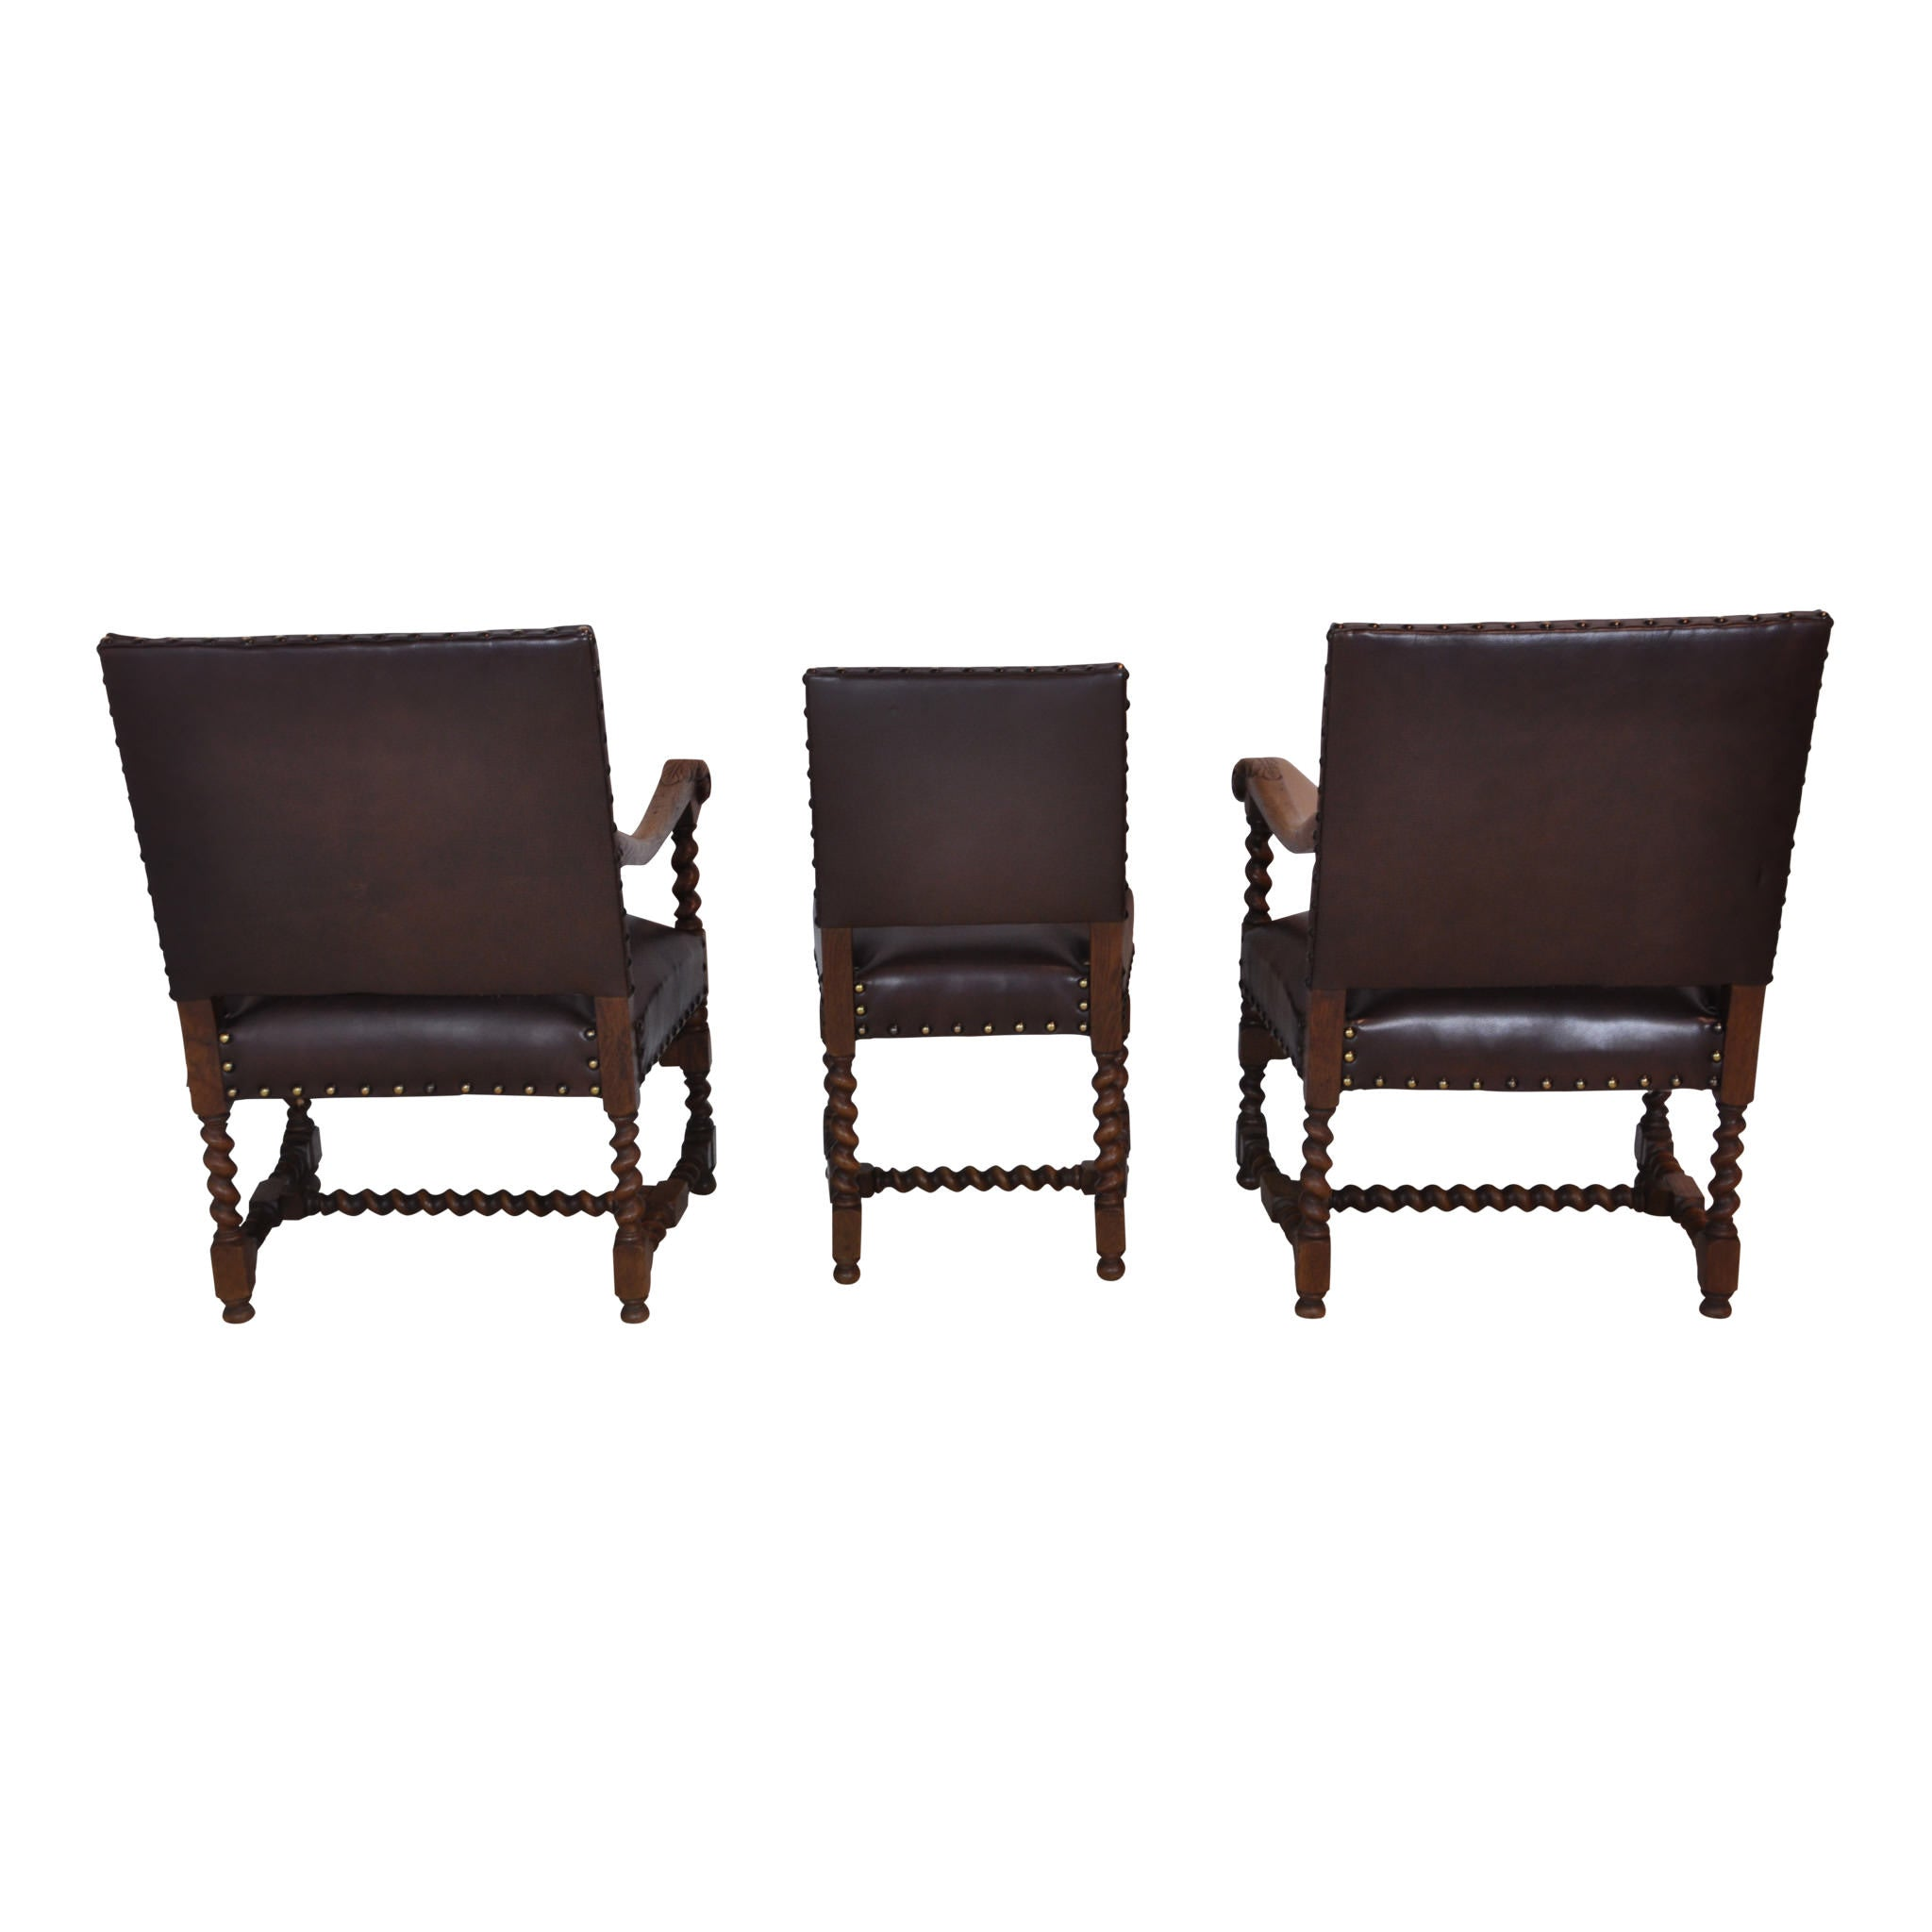 French Twist Chairs Set/6 (1stdibs)